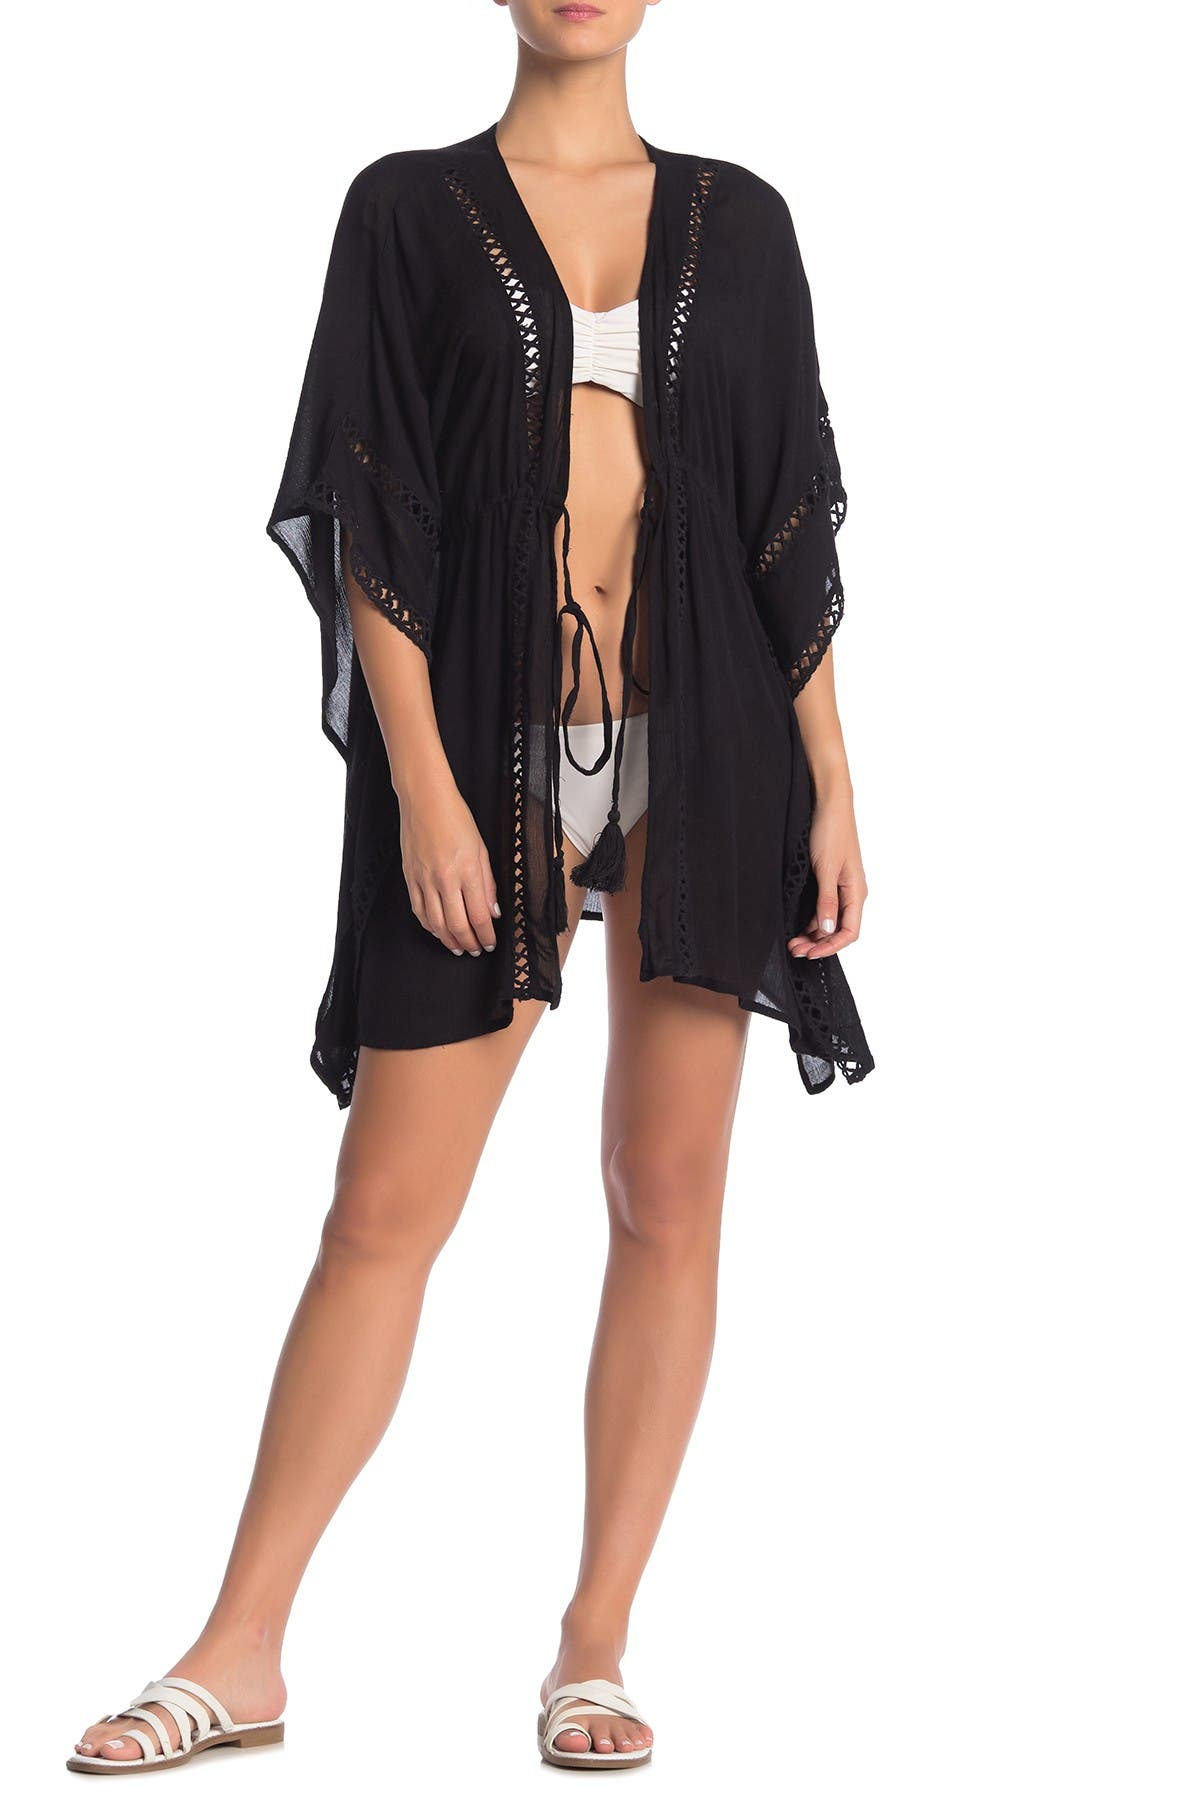 Image of BOHO ME Solid Lace Trim Cover-Up